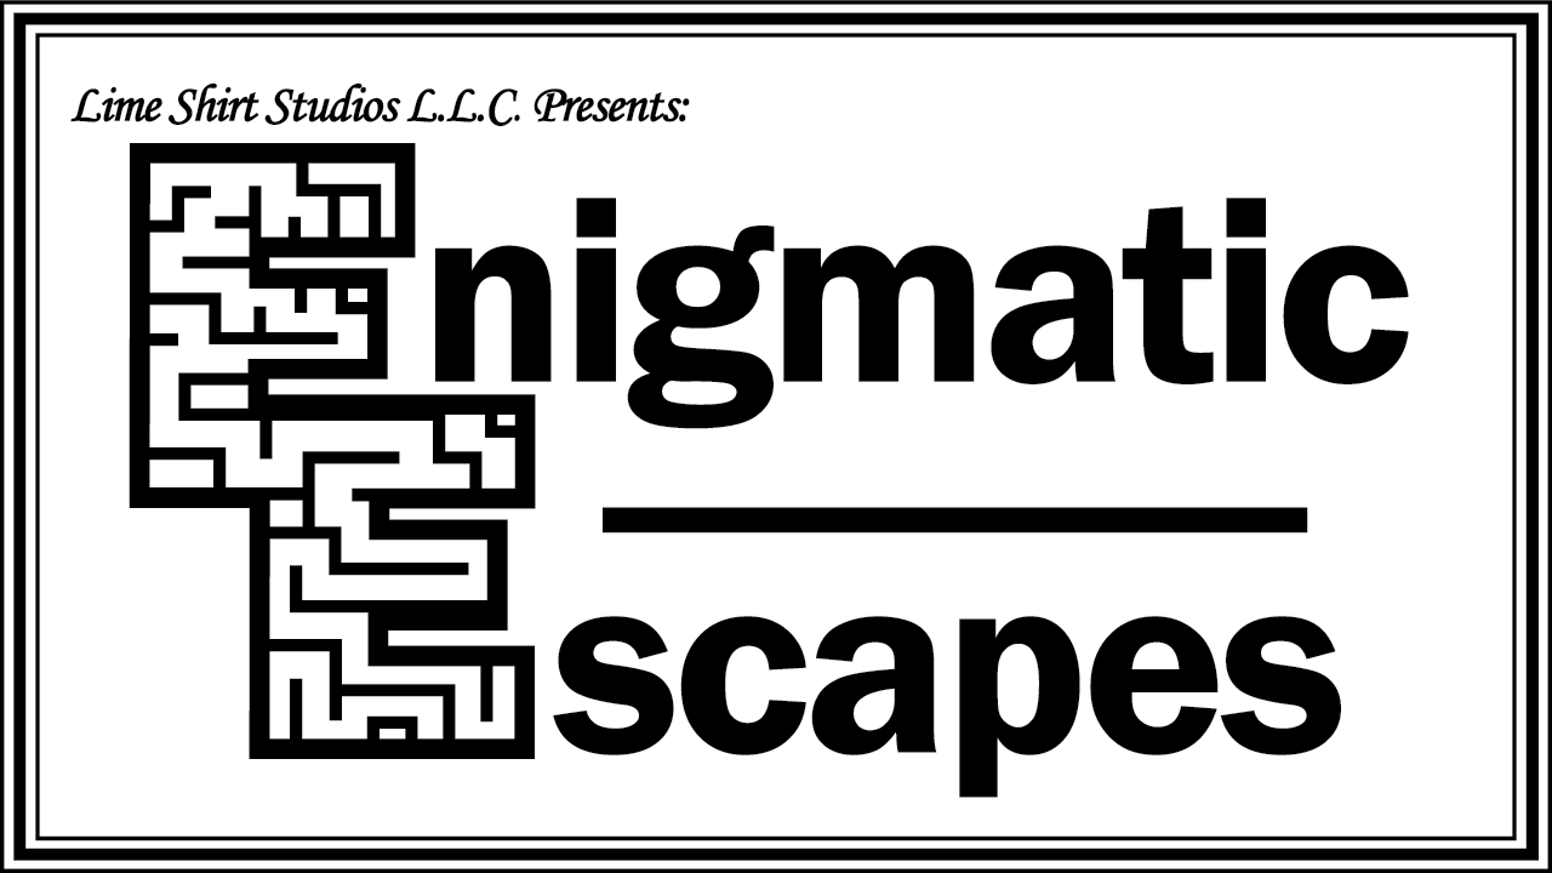 Enigmatic Escapes: Secret of the Study, an Escape Room by